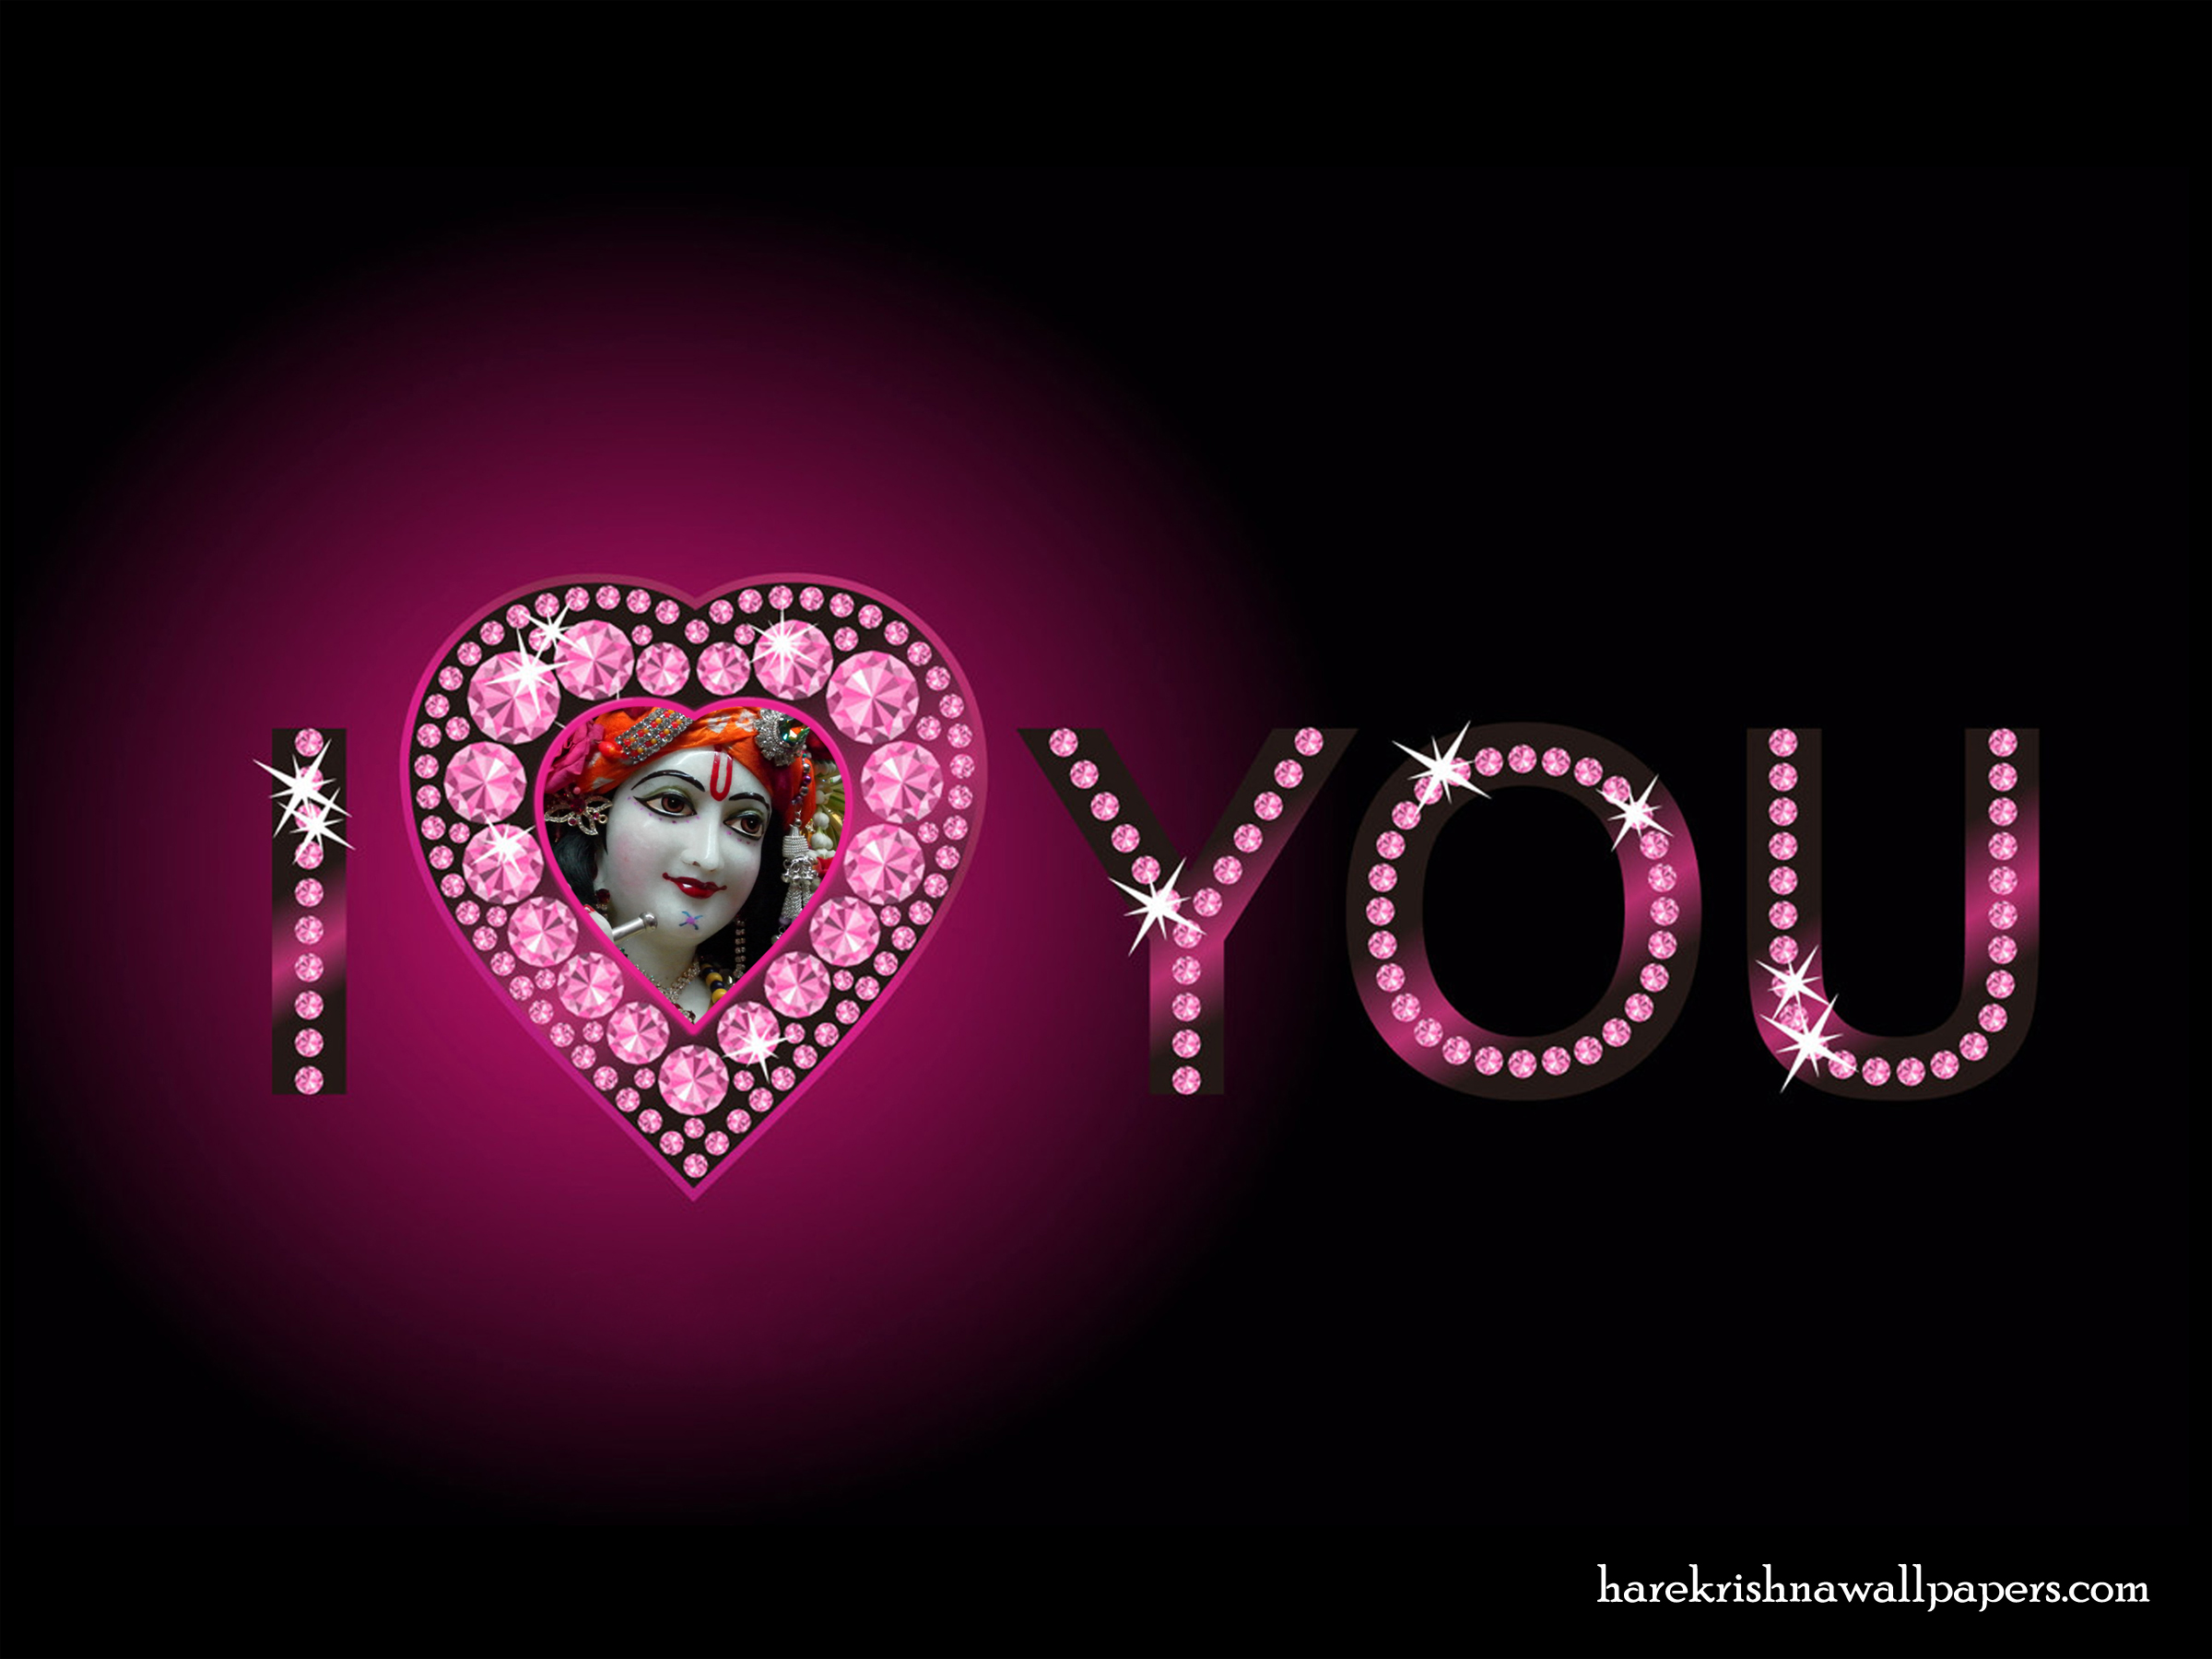 I Love You Giridhari Wallpaper (010) Size 2400x1800 Download